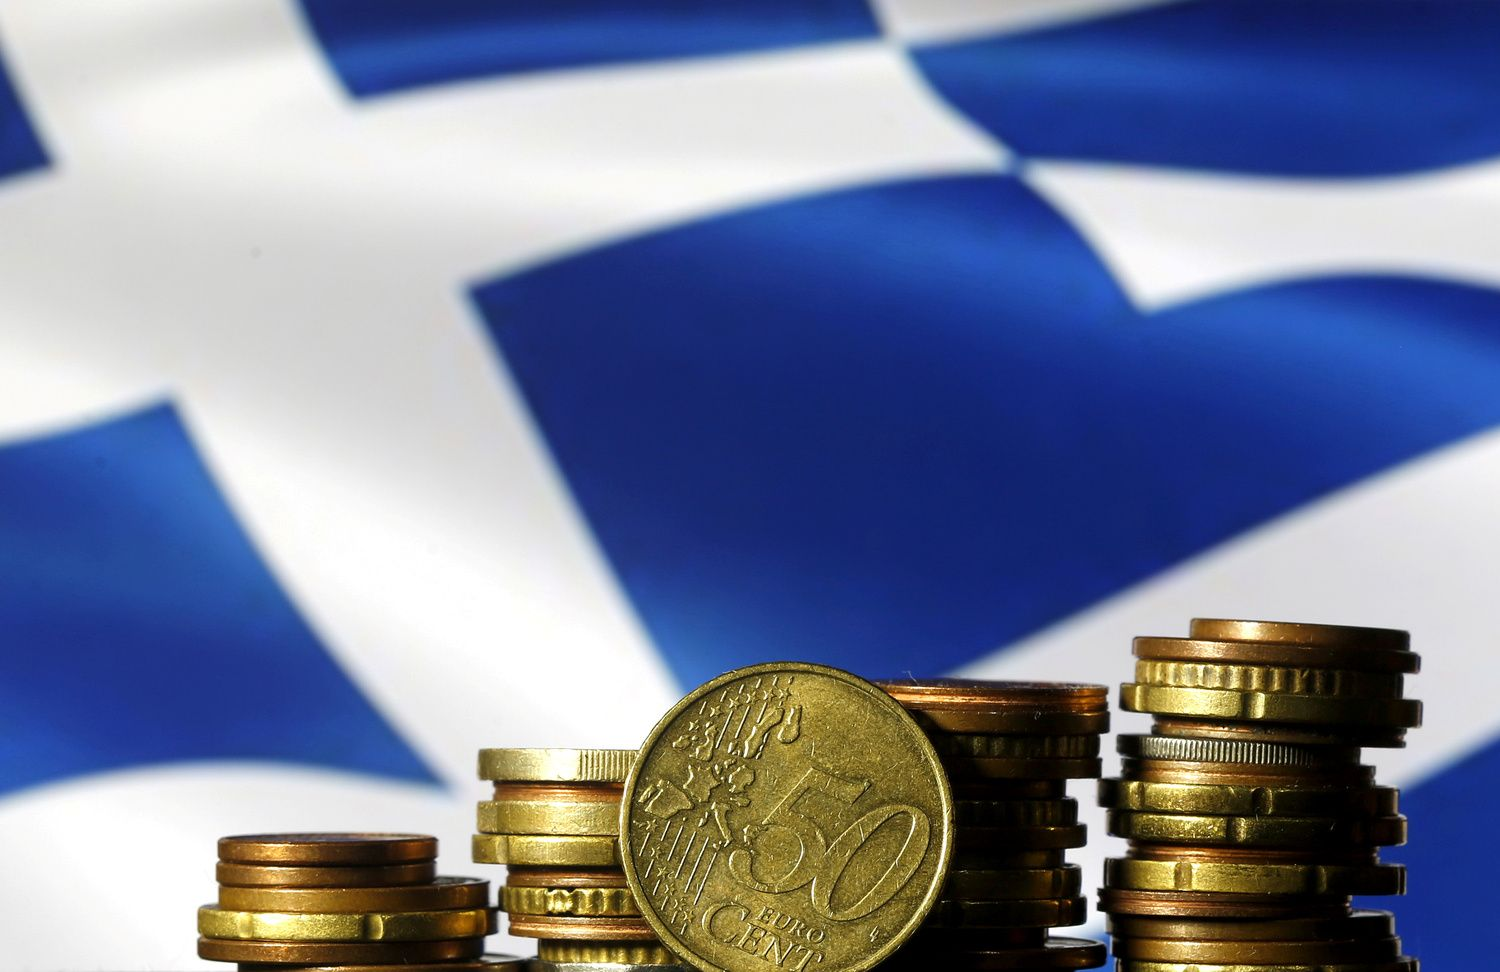 Greece Starts Taking Bond Orders in Return From Market Exile